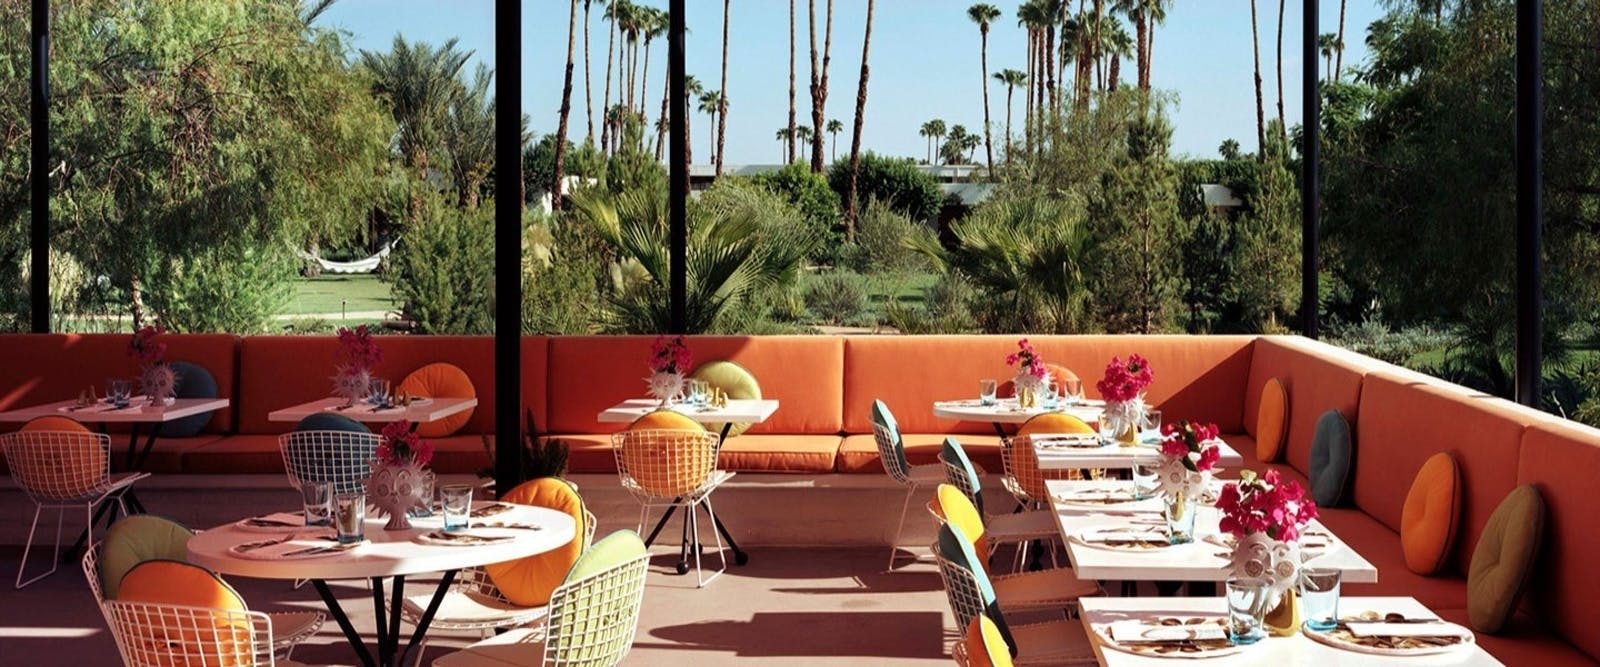 Normas Alfresco Dining, Parker Palm Springs, California